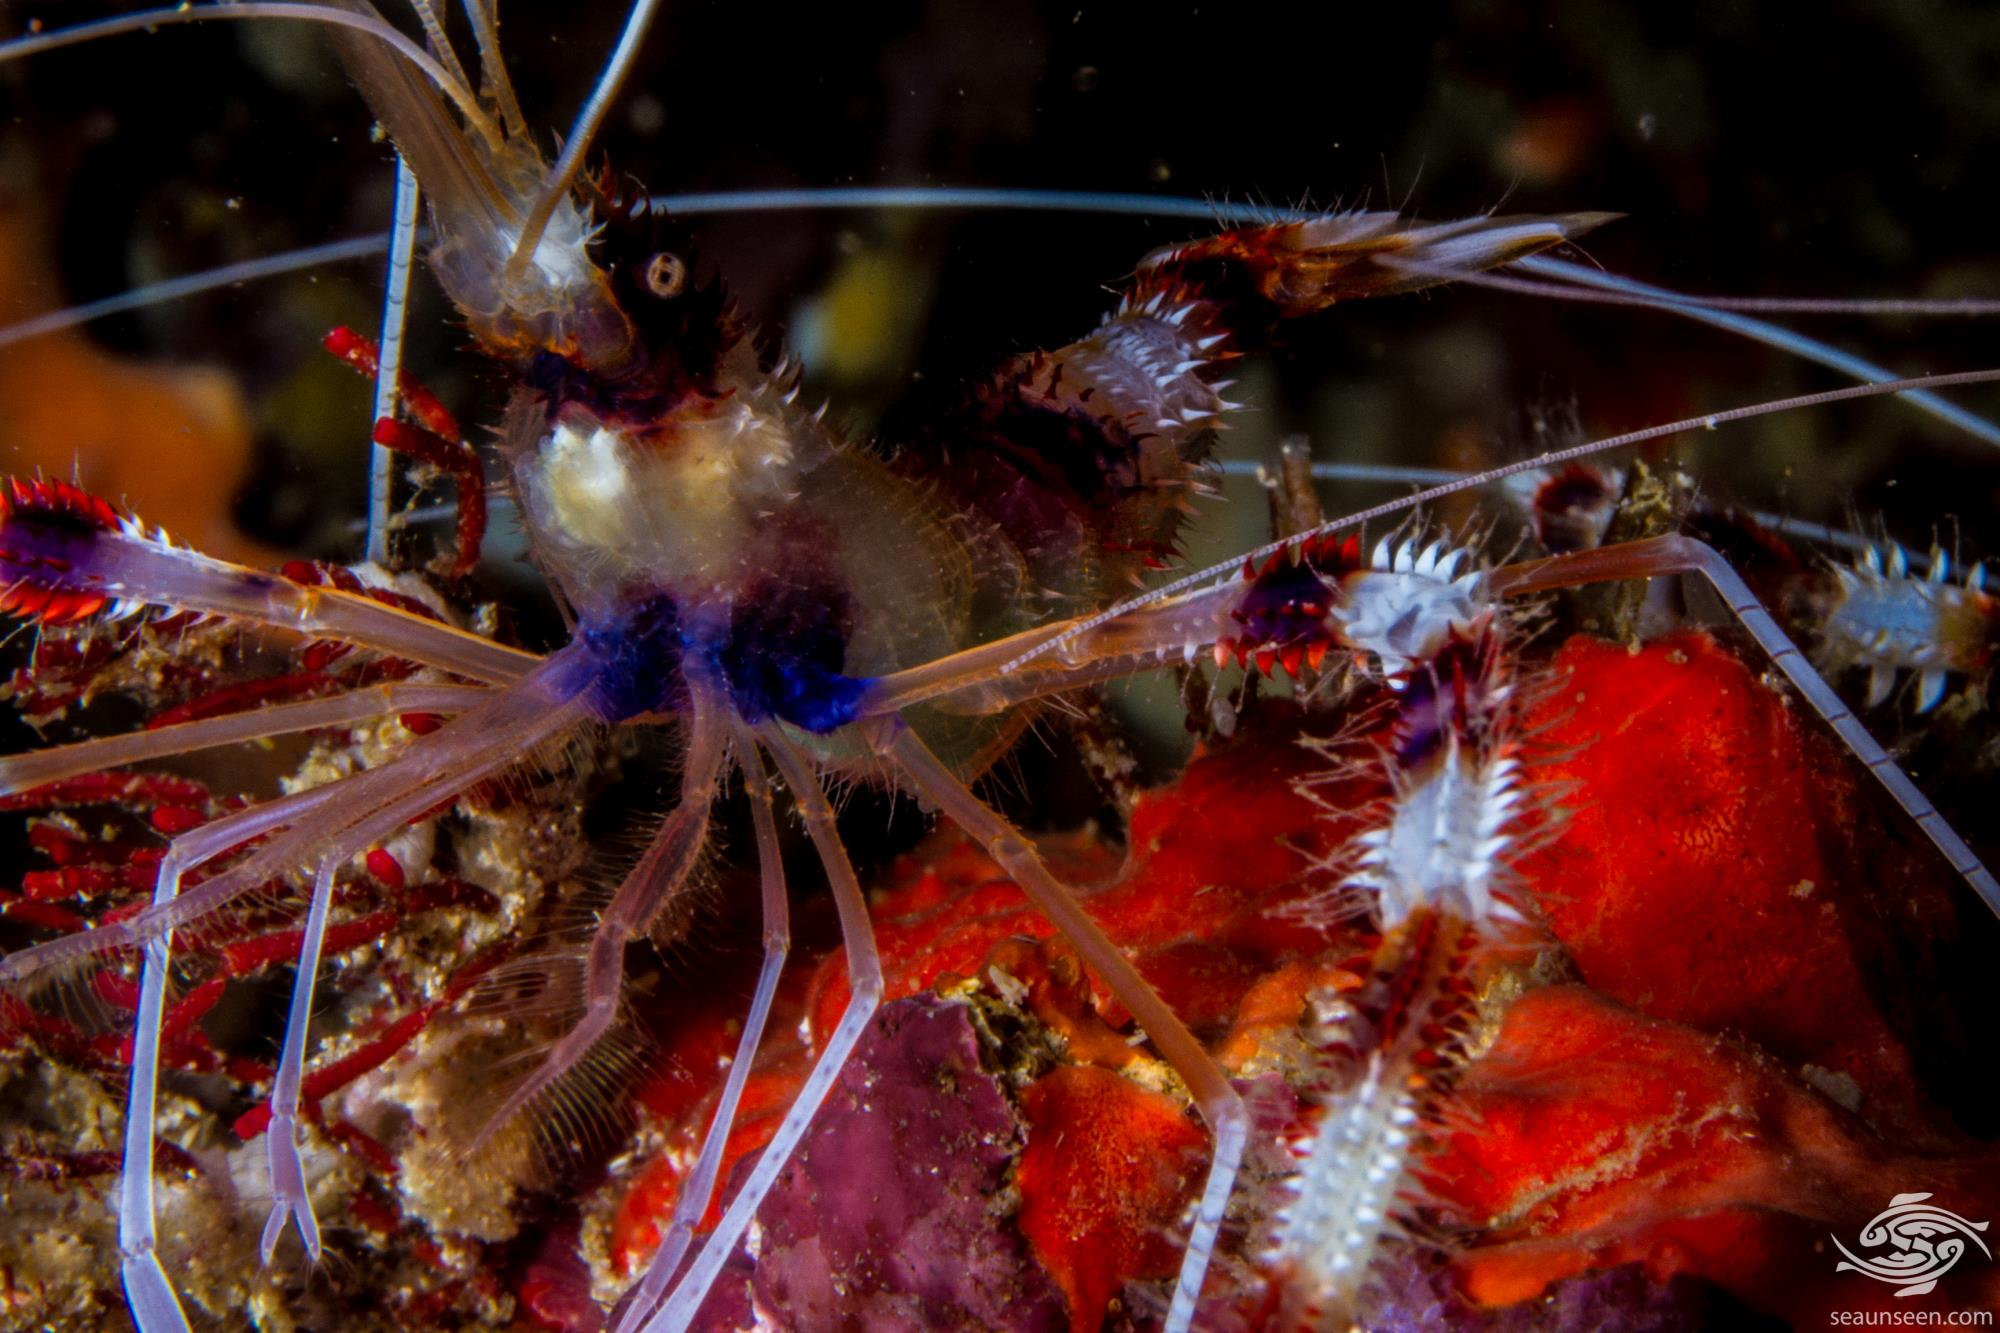 banded coral shrimp (Tenopus hispidus) is also known as the banded cleaner shrimp